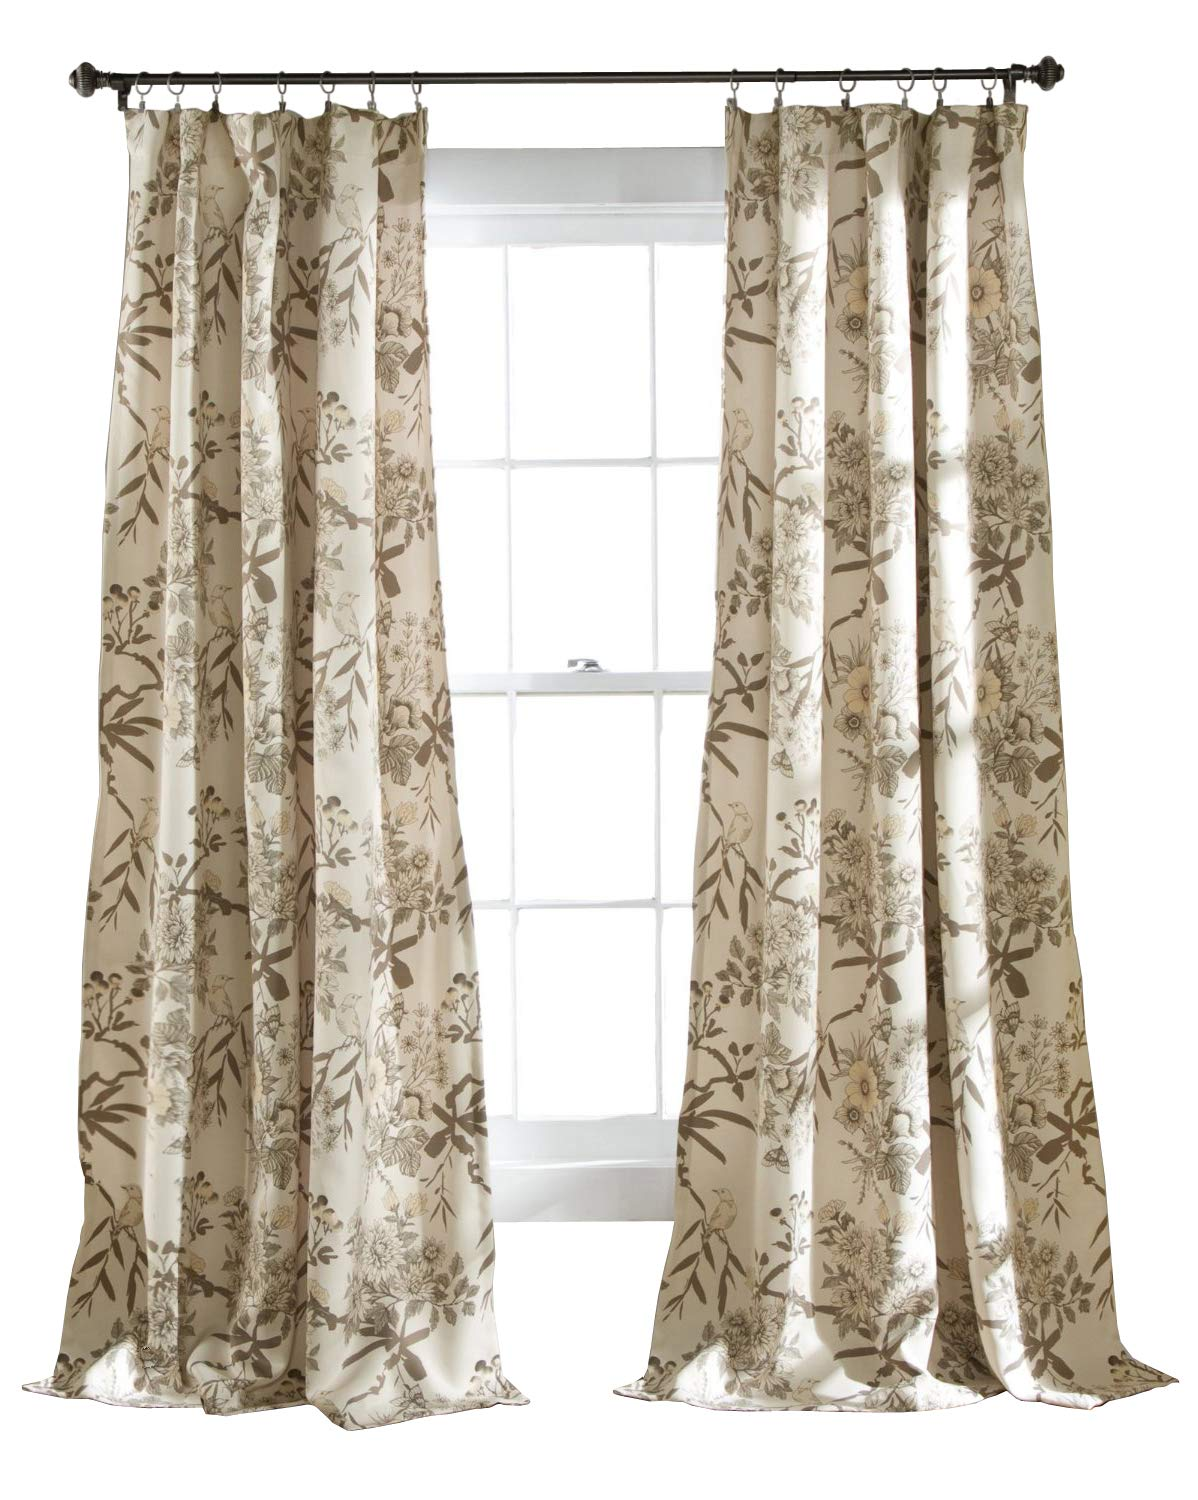 "Lush Decor Botanical Garden Window Panel Set, 84"" x 52"", Beige - The simple Floral pattern with the bird window panels is the perfect addition to any room Room darkening, energy efficient, set of two curtains Made in China - living-room-soft-furnishings, living-room, draperies-curtains-shades - 71Gd43LzKGL -"